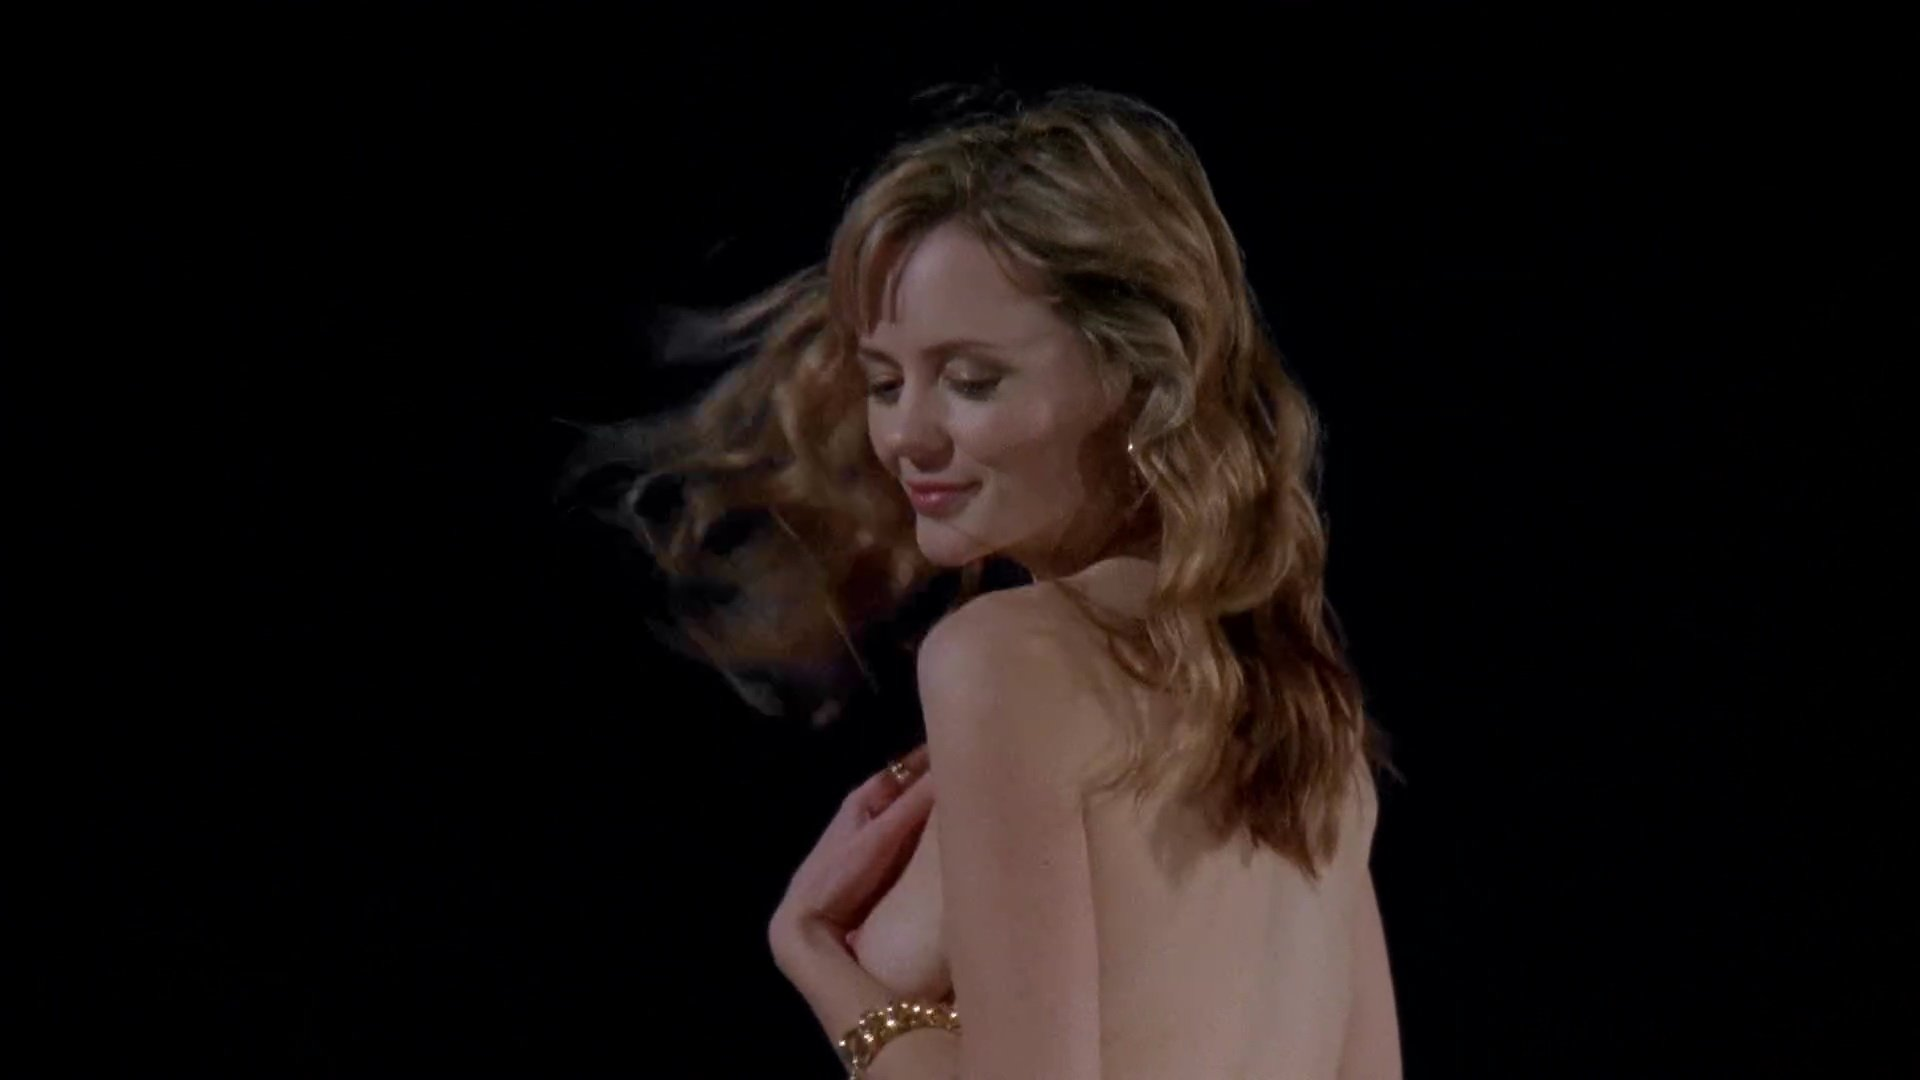 Camille Keenan nude - Satisfaction s03e01-05 (2010)